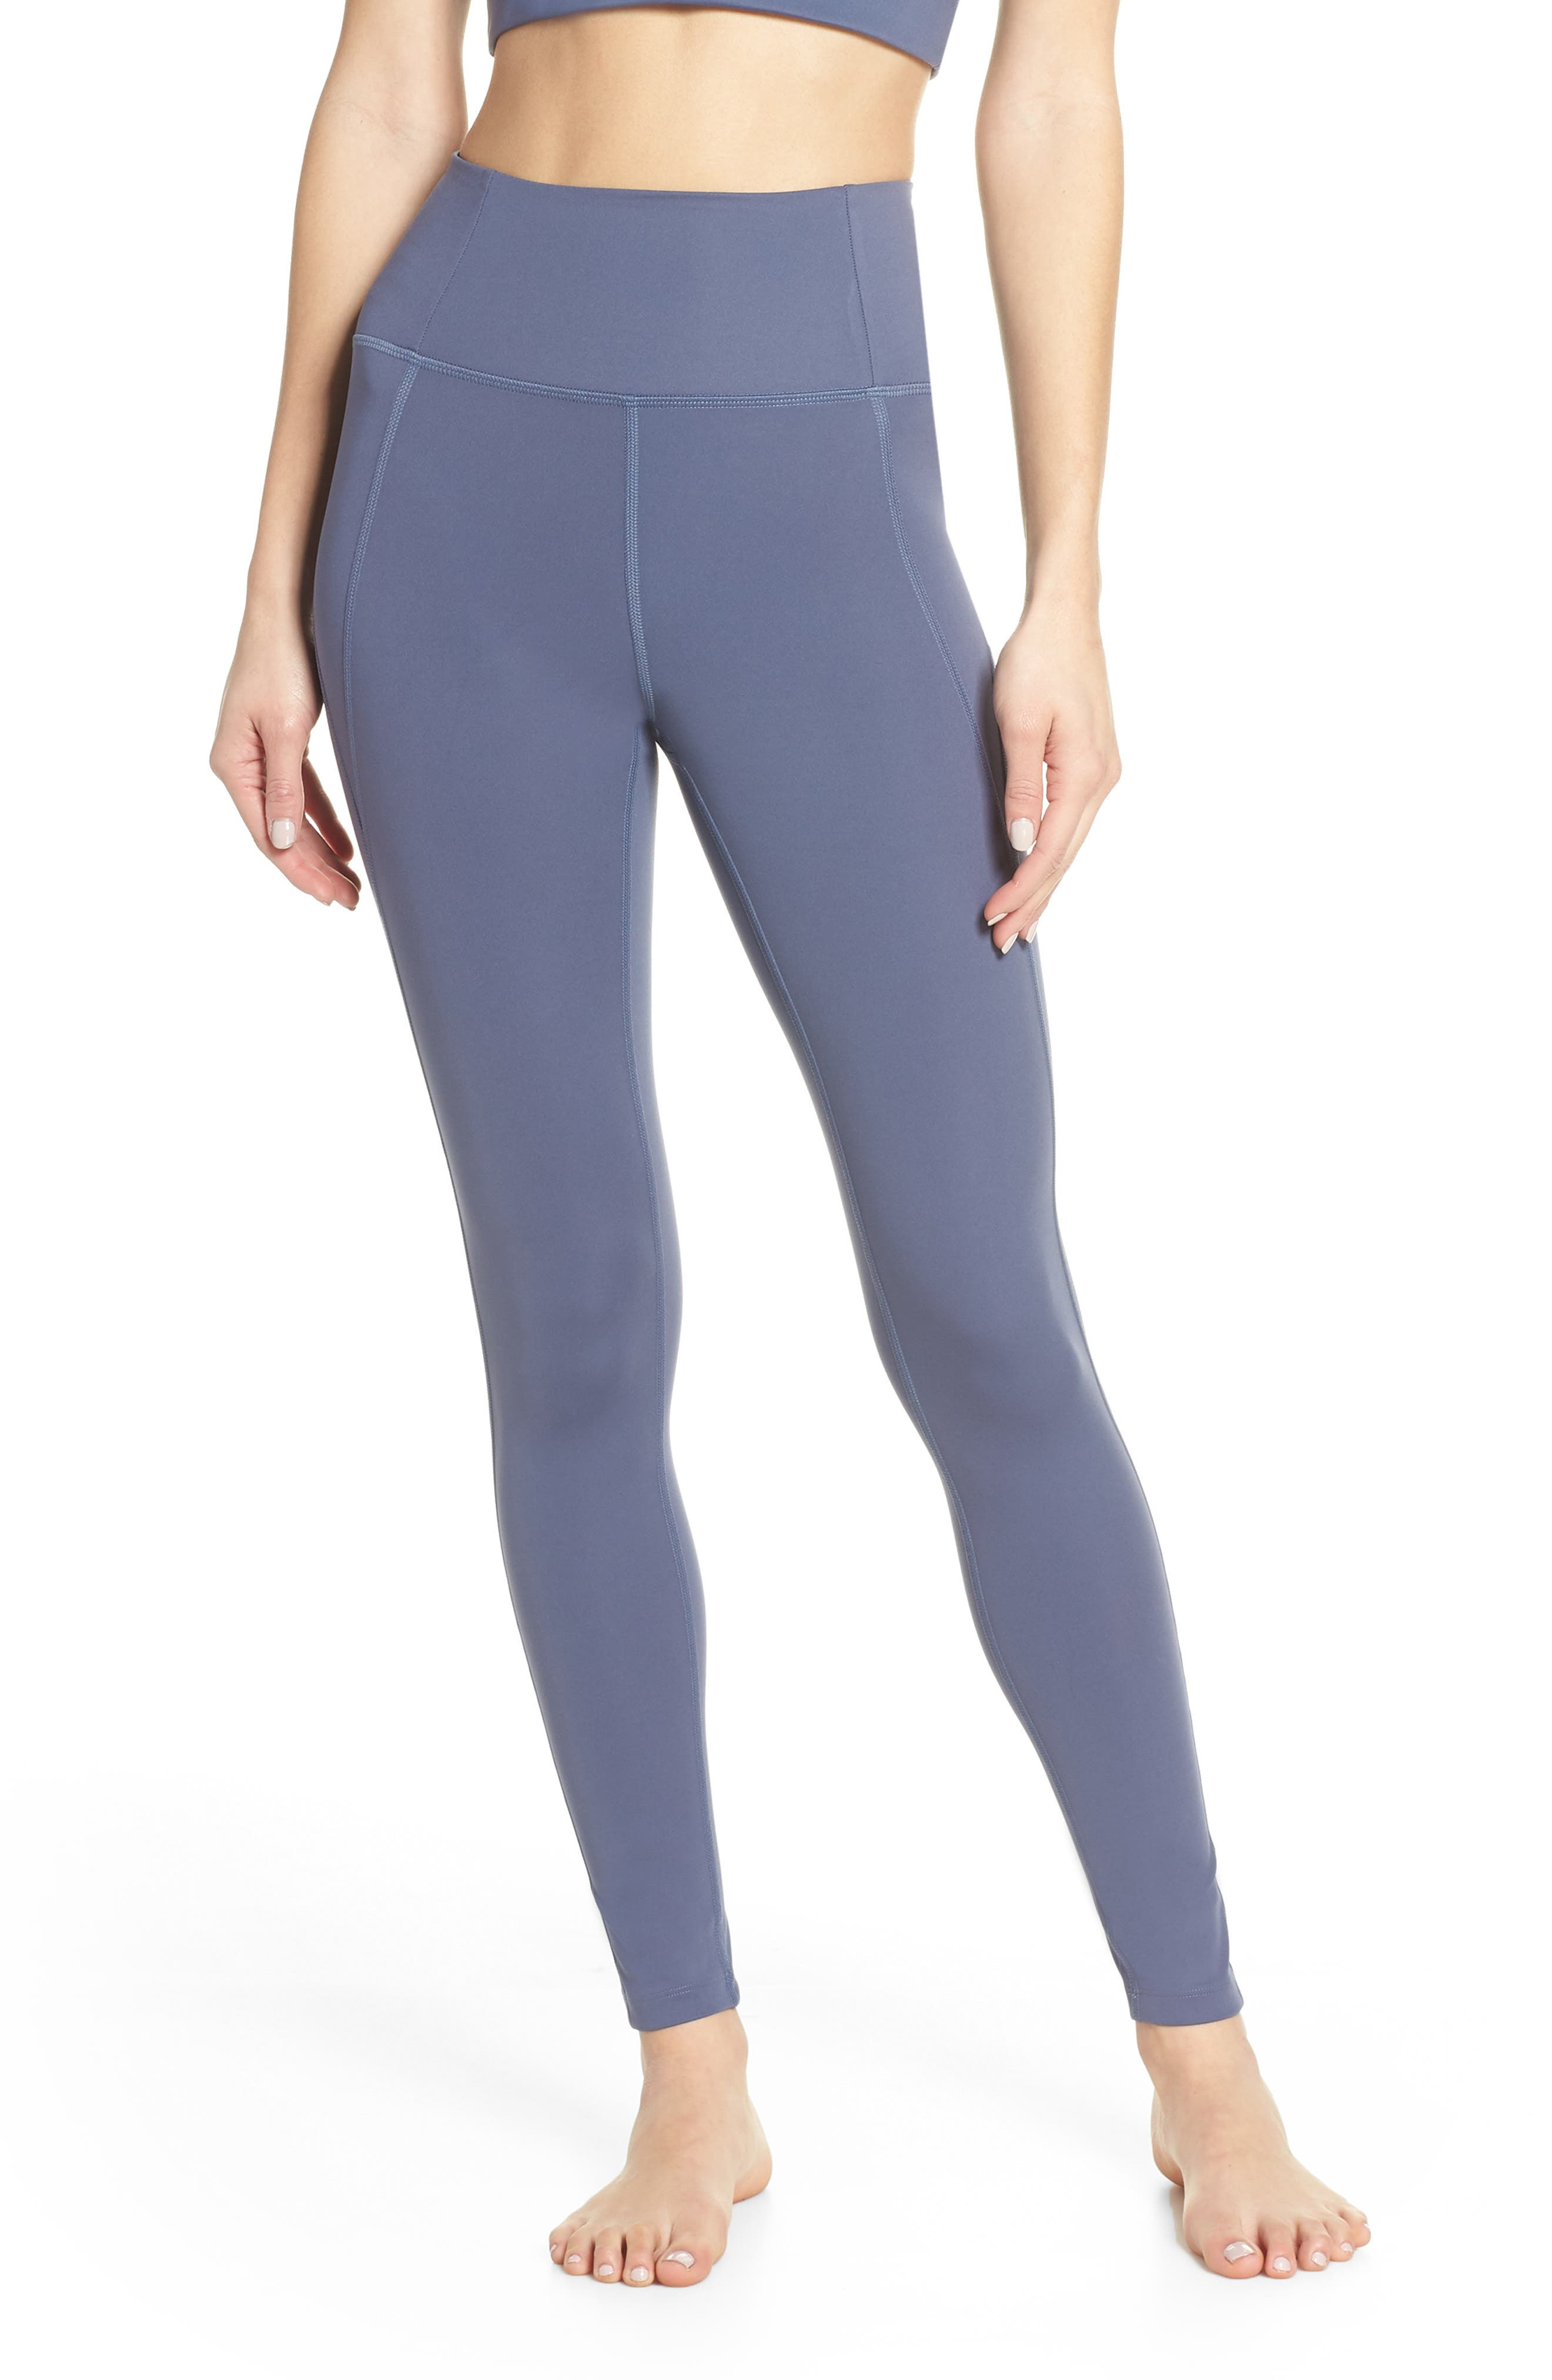 Girlfriend Collective High Waist Full Length Leggings, Purple